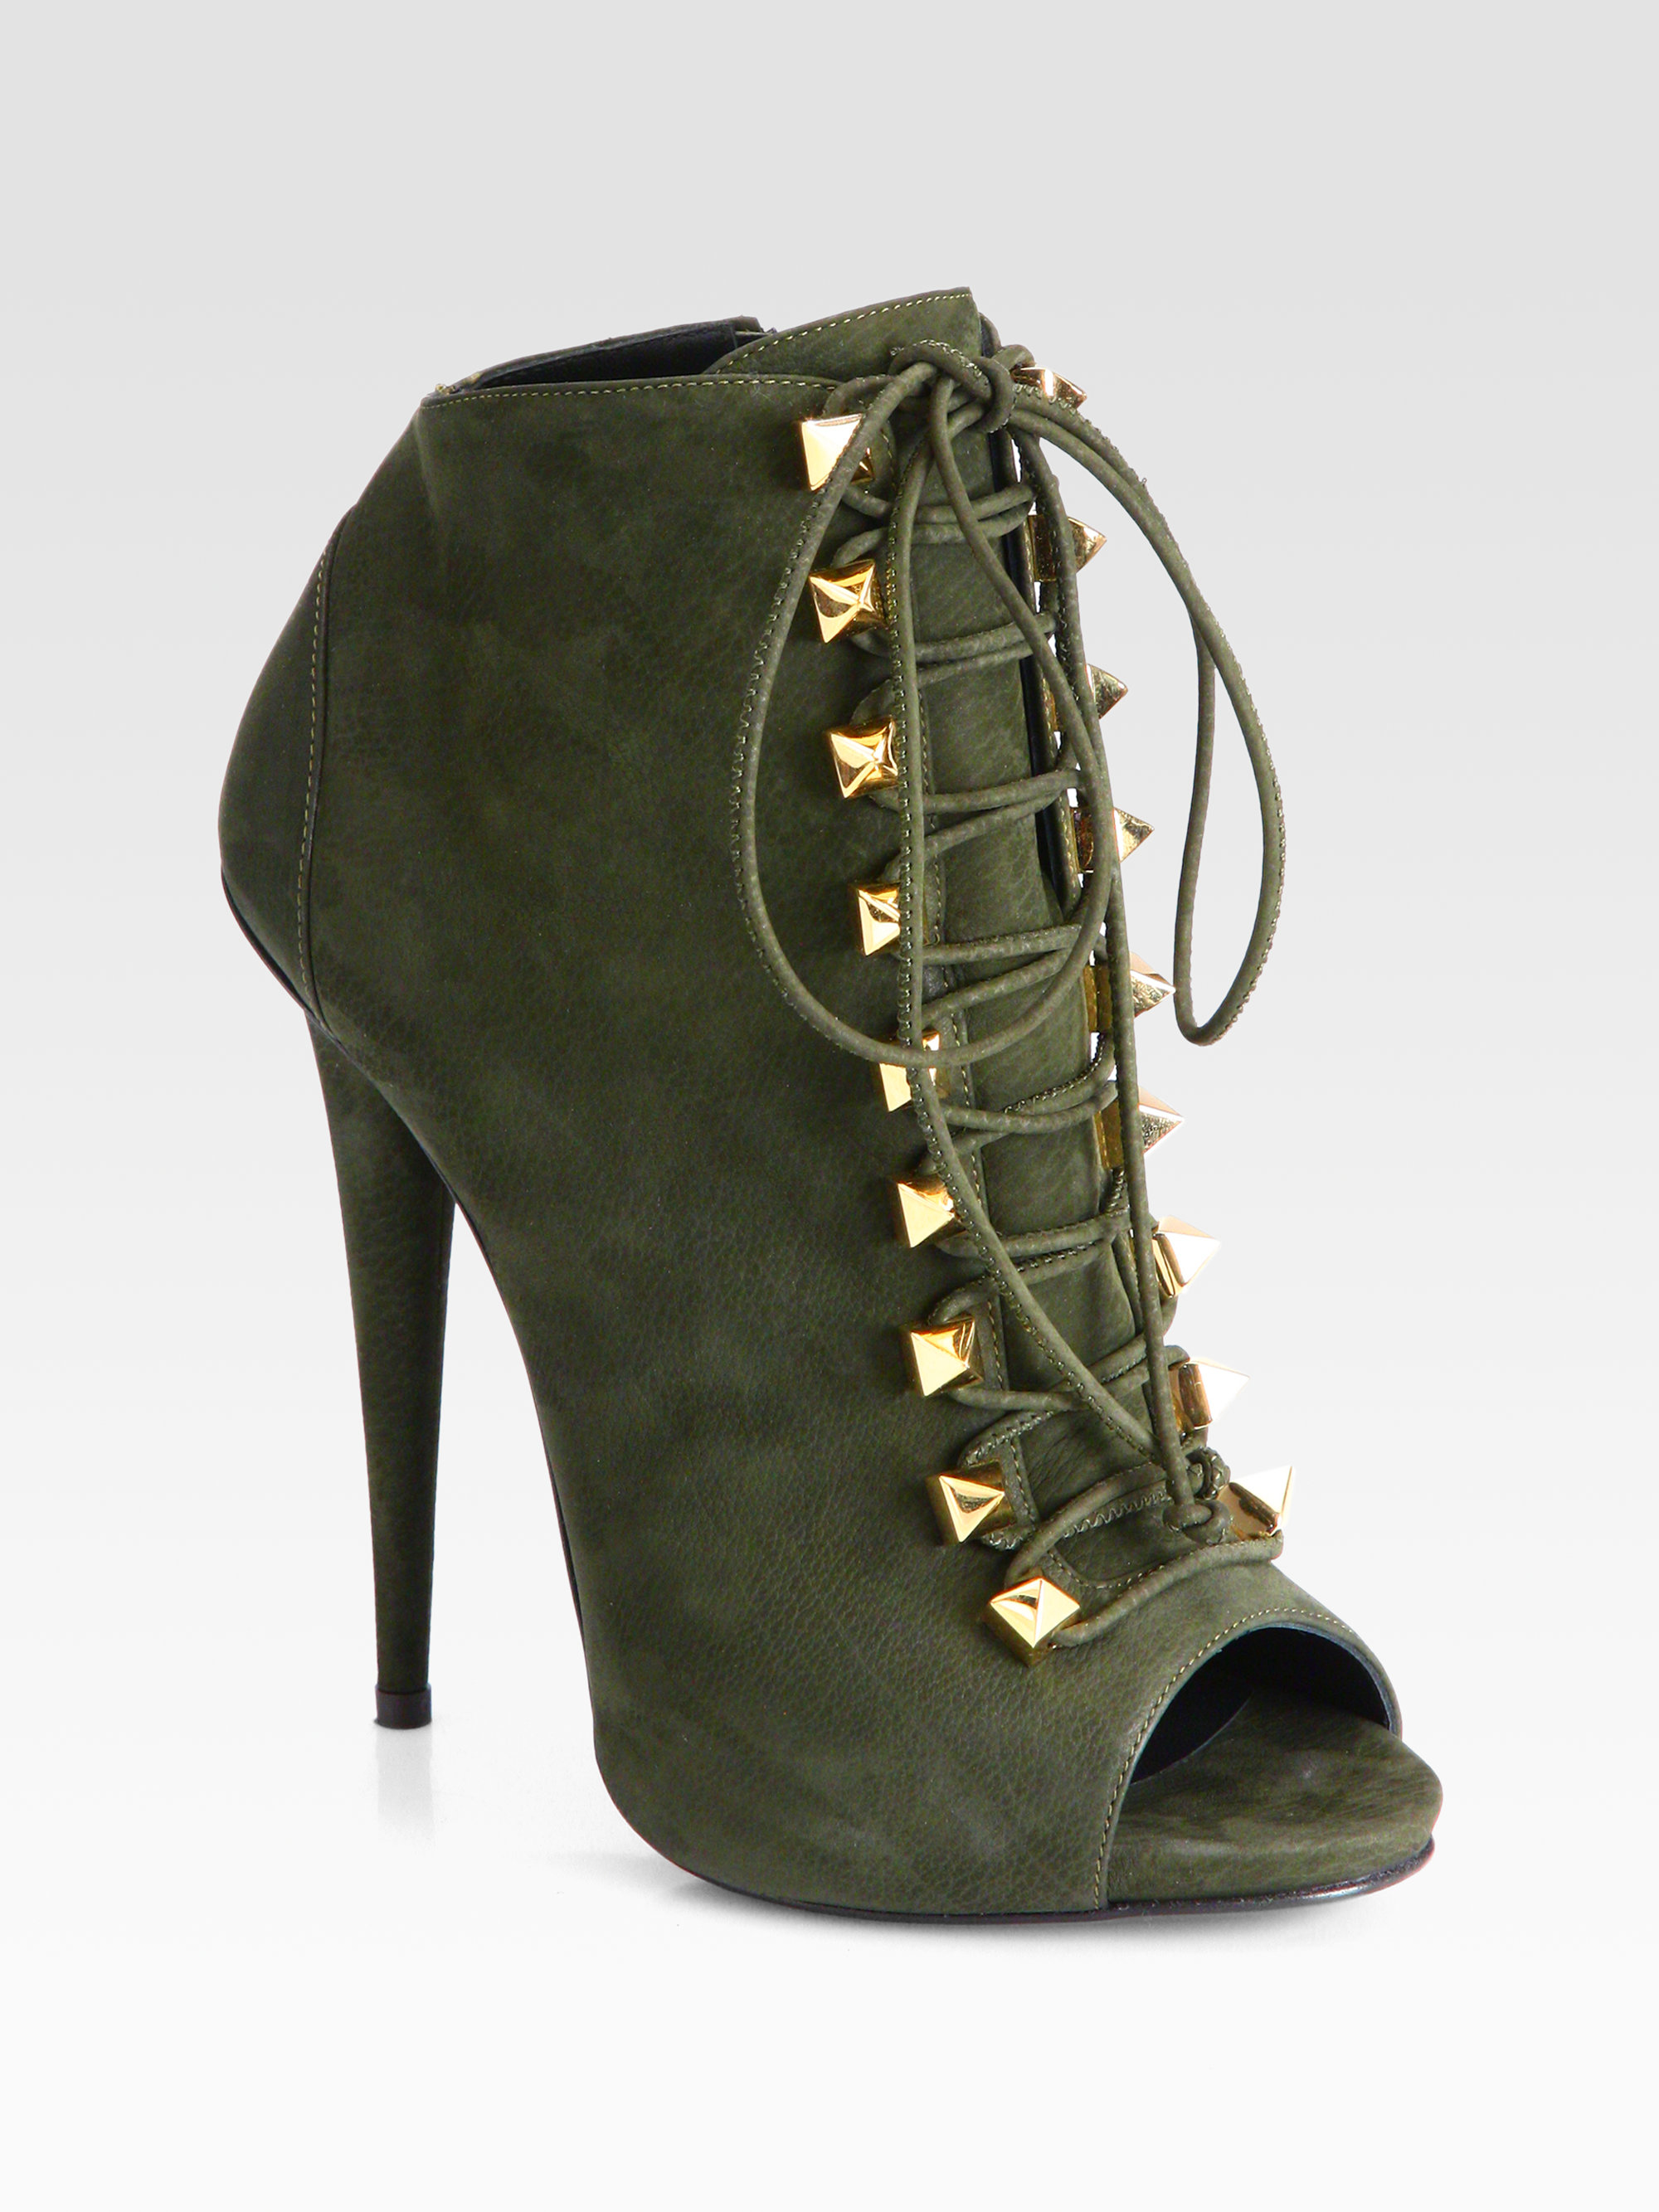 Lyst - Giuseppe Zanotti Suede Laceup Ankle Boots in Green 3057583491e5